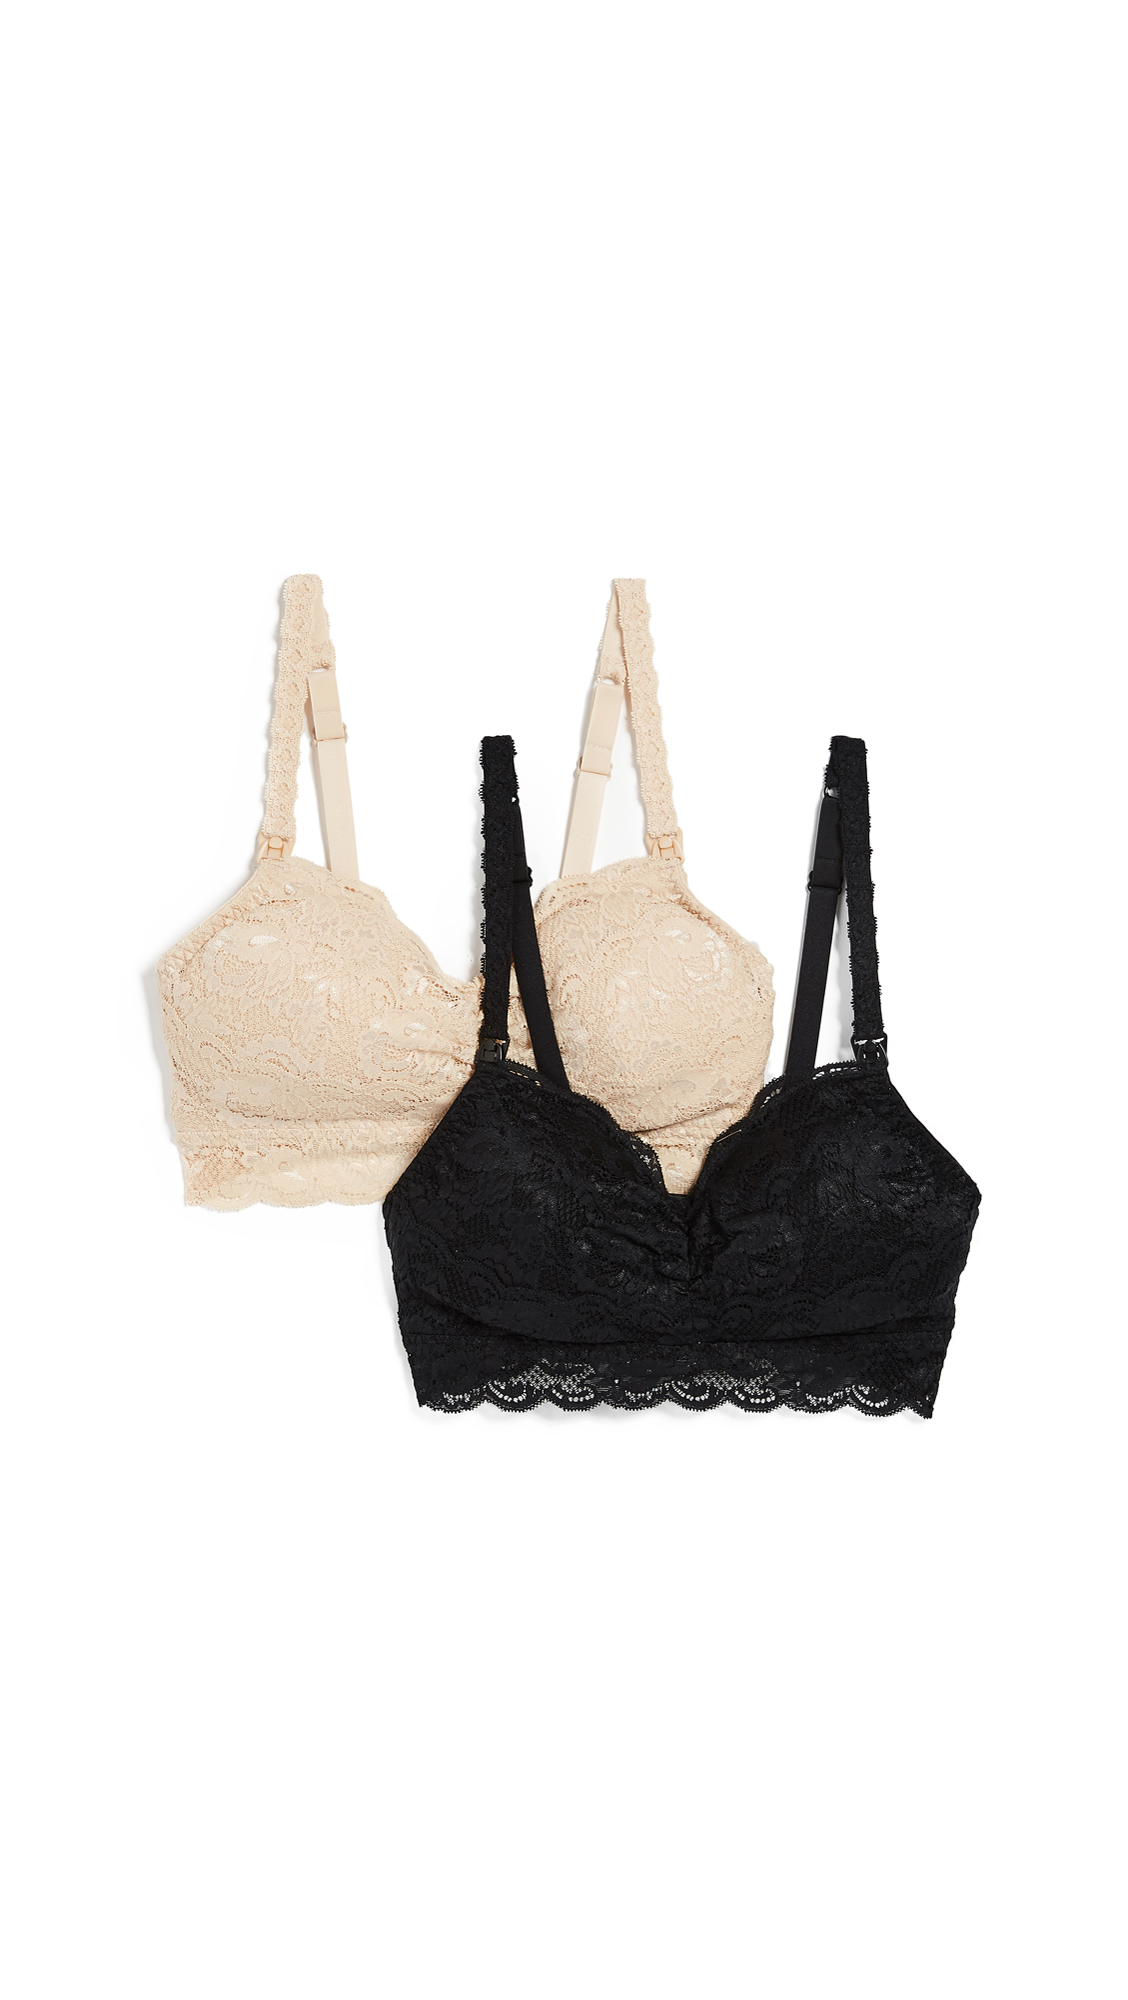 Cosabella Never Say Never Maternity Bra 2 Pack